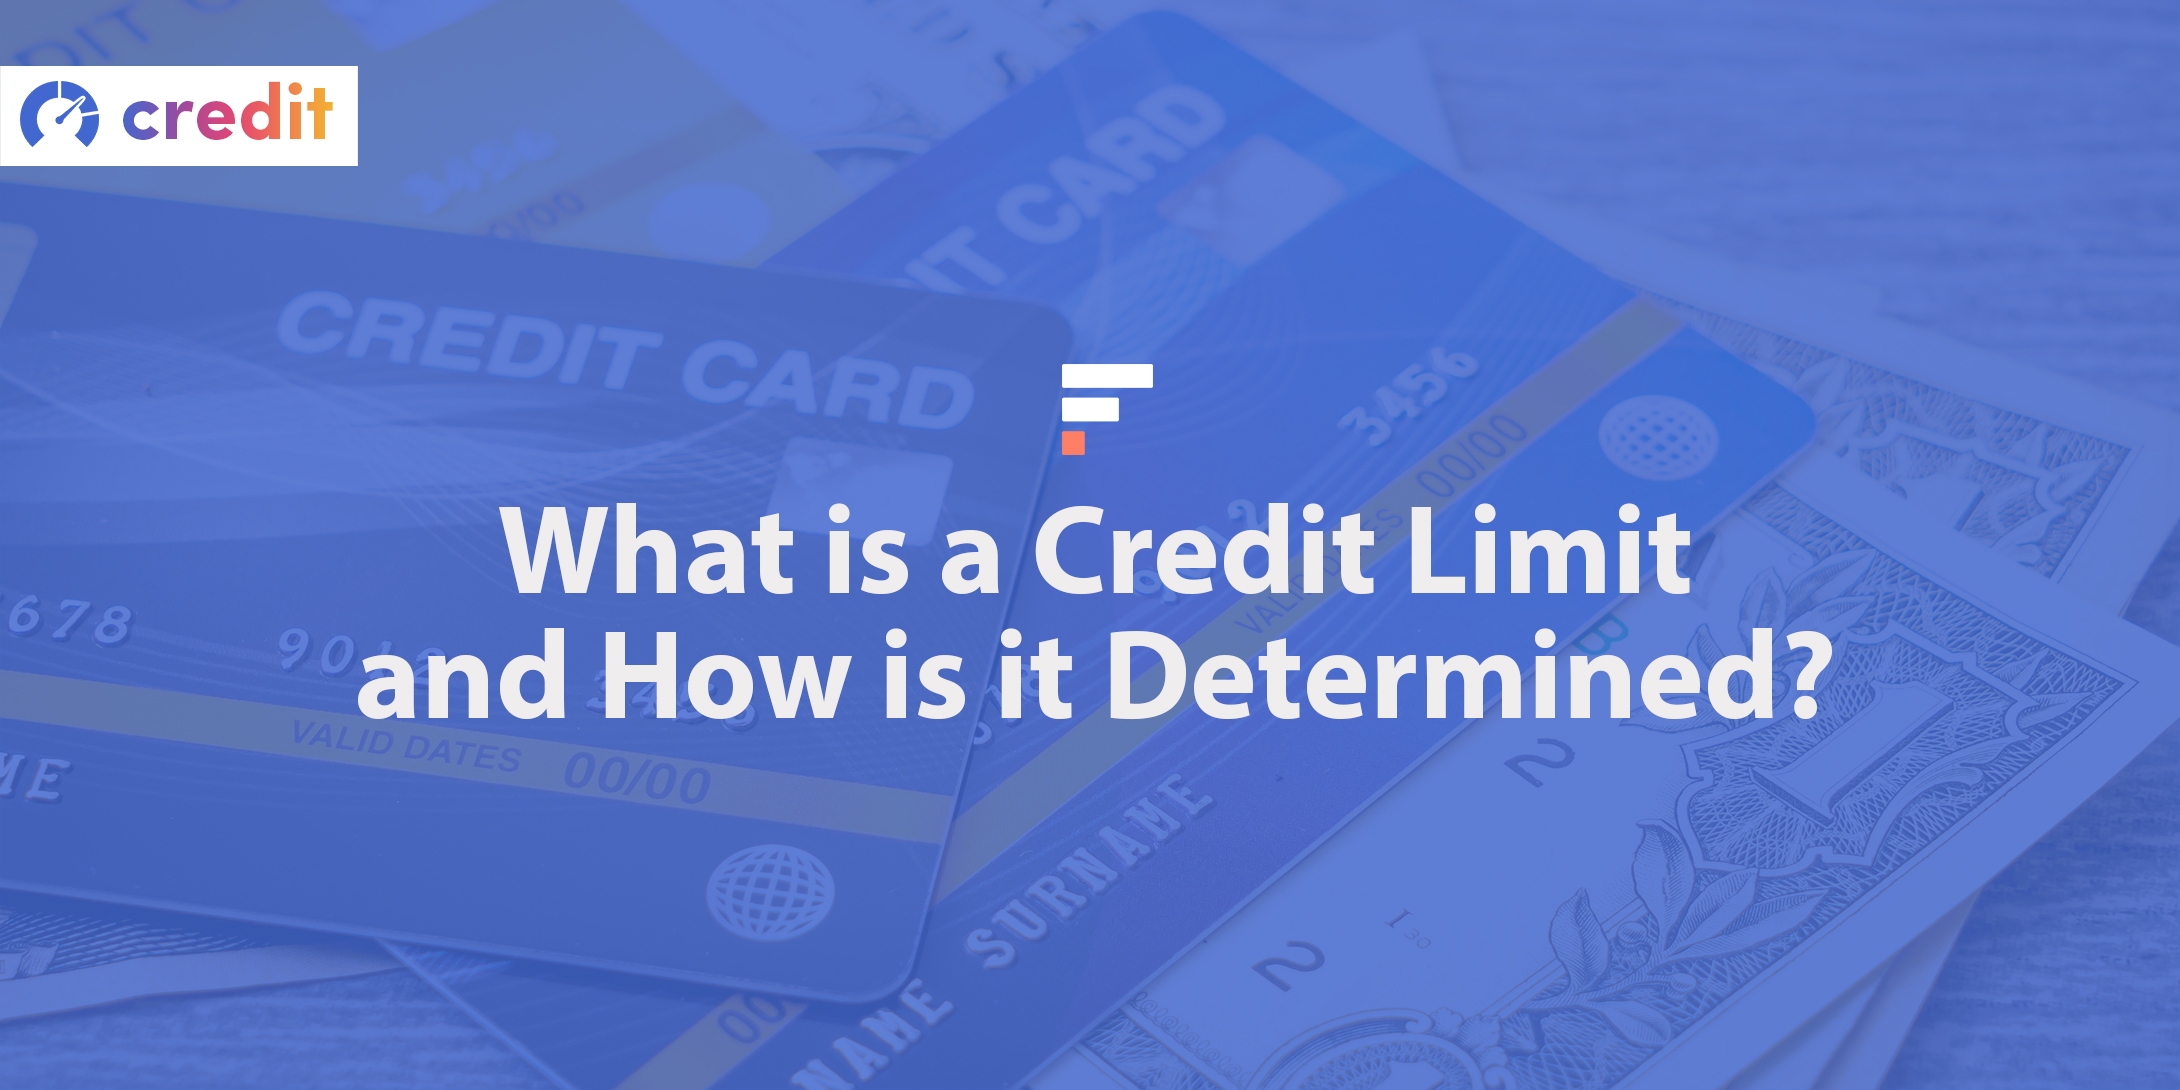 What is a credit limit and how is it determined